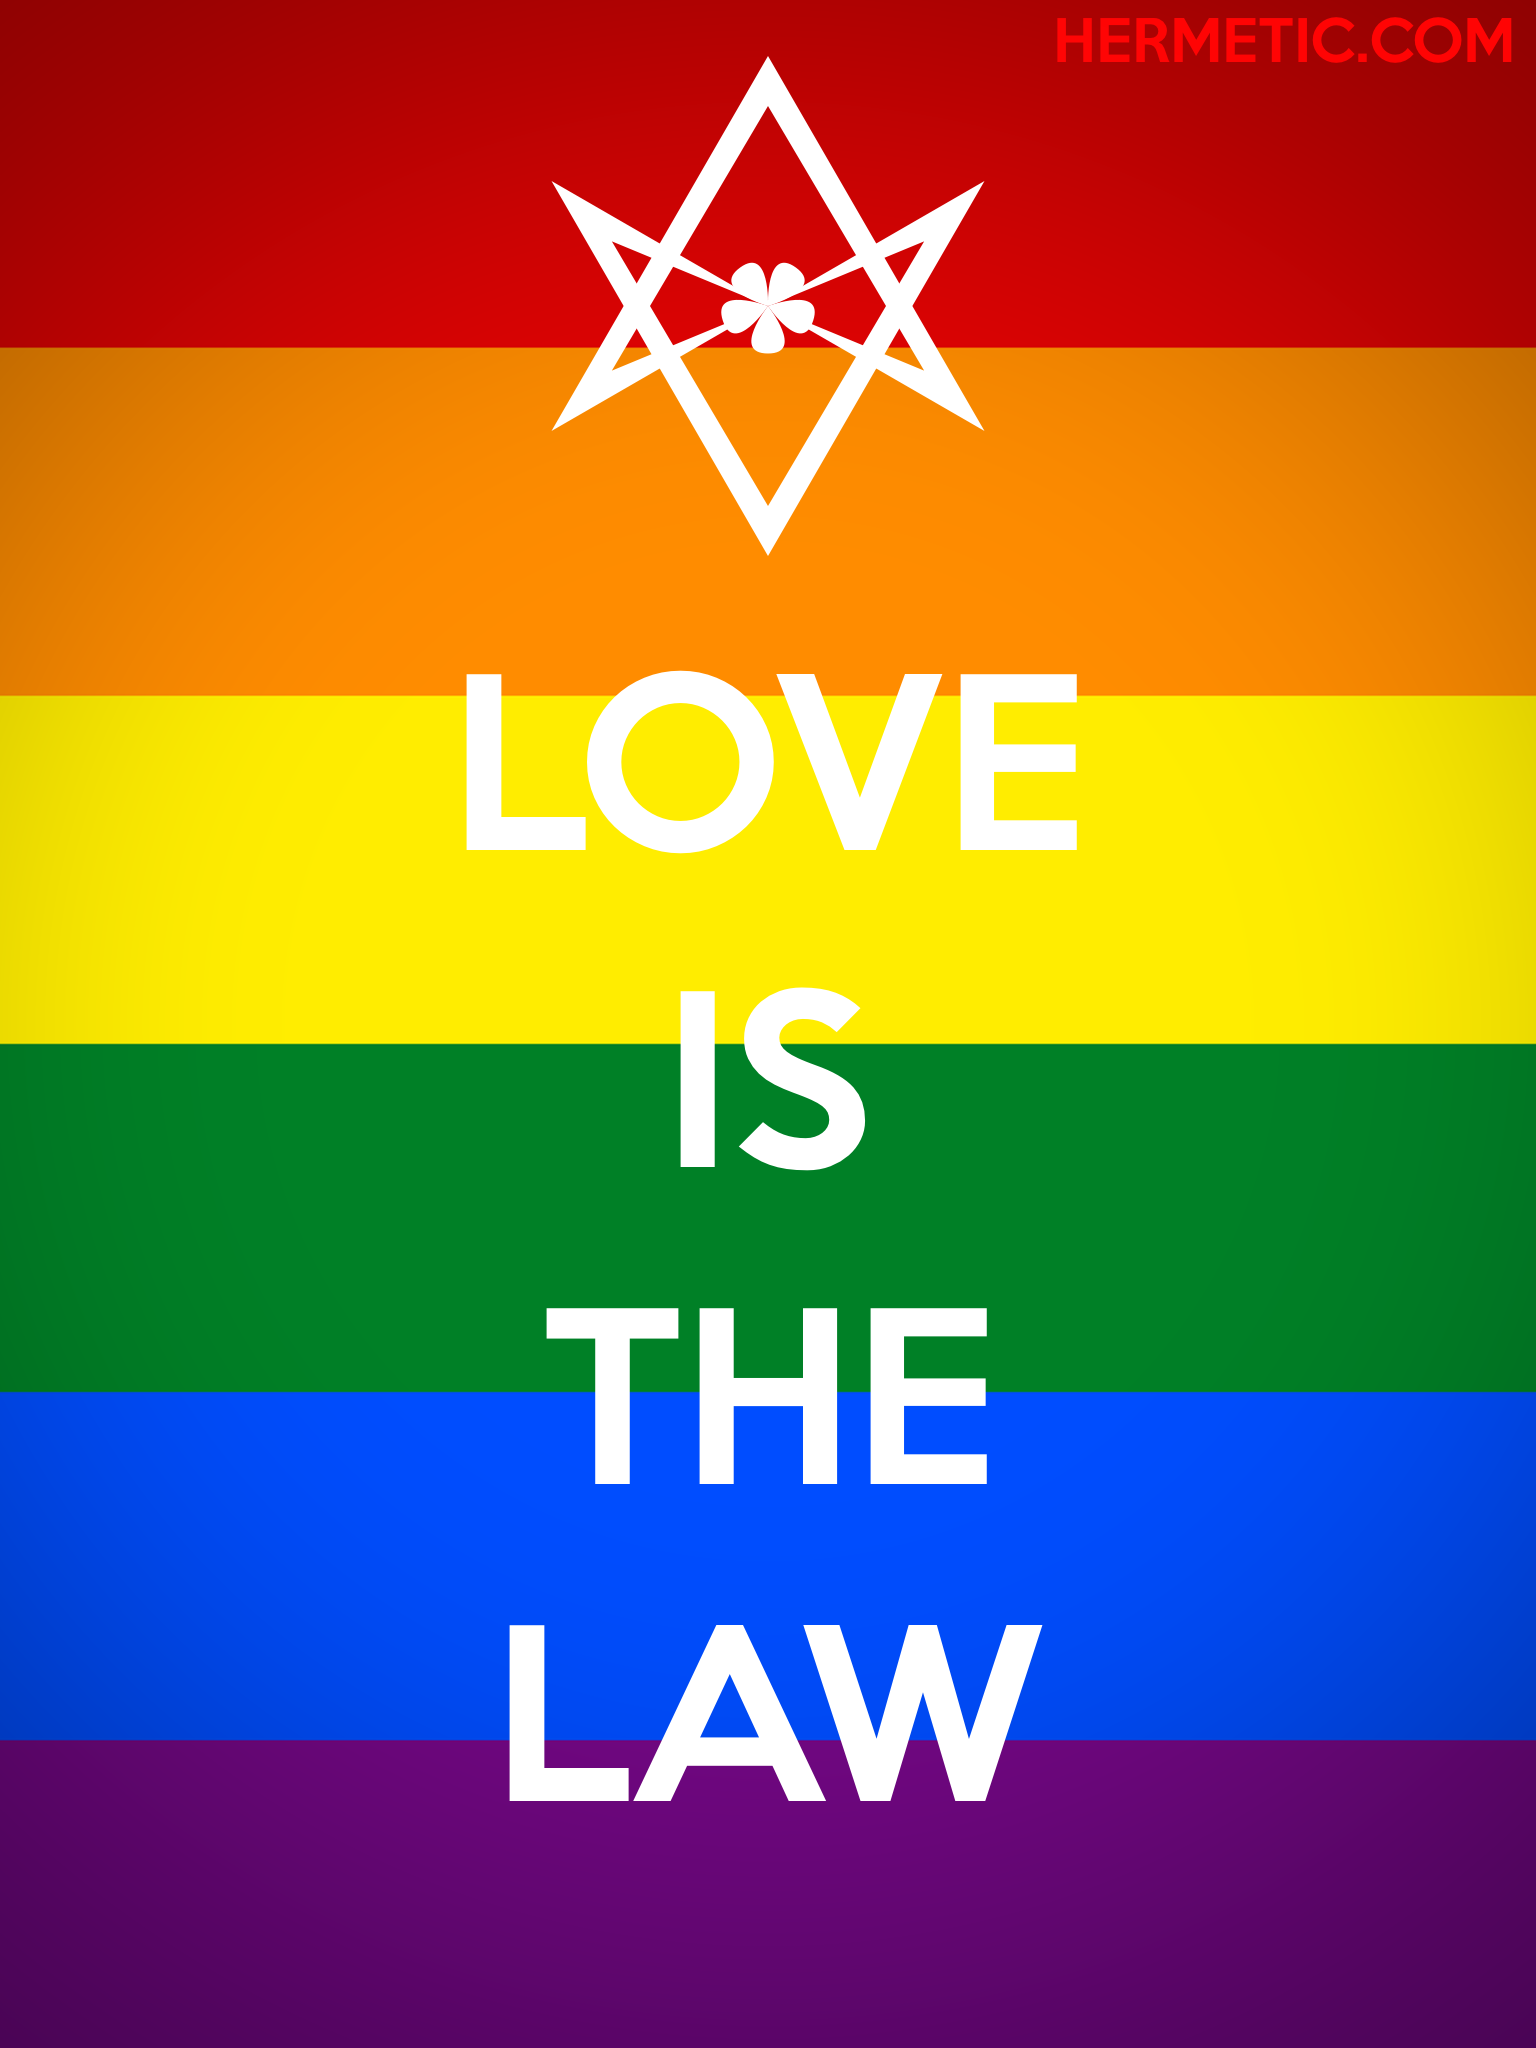 Unicursal LOVE IS THE LAW rainbow propaganda poster from the Office of the Ministry of Information at Hermetic Library